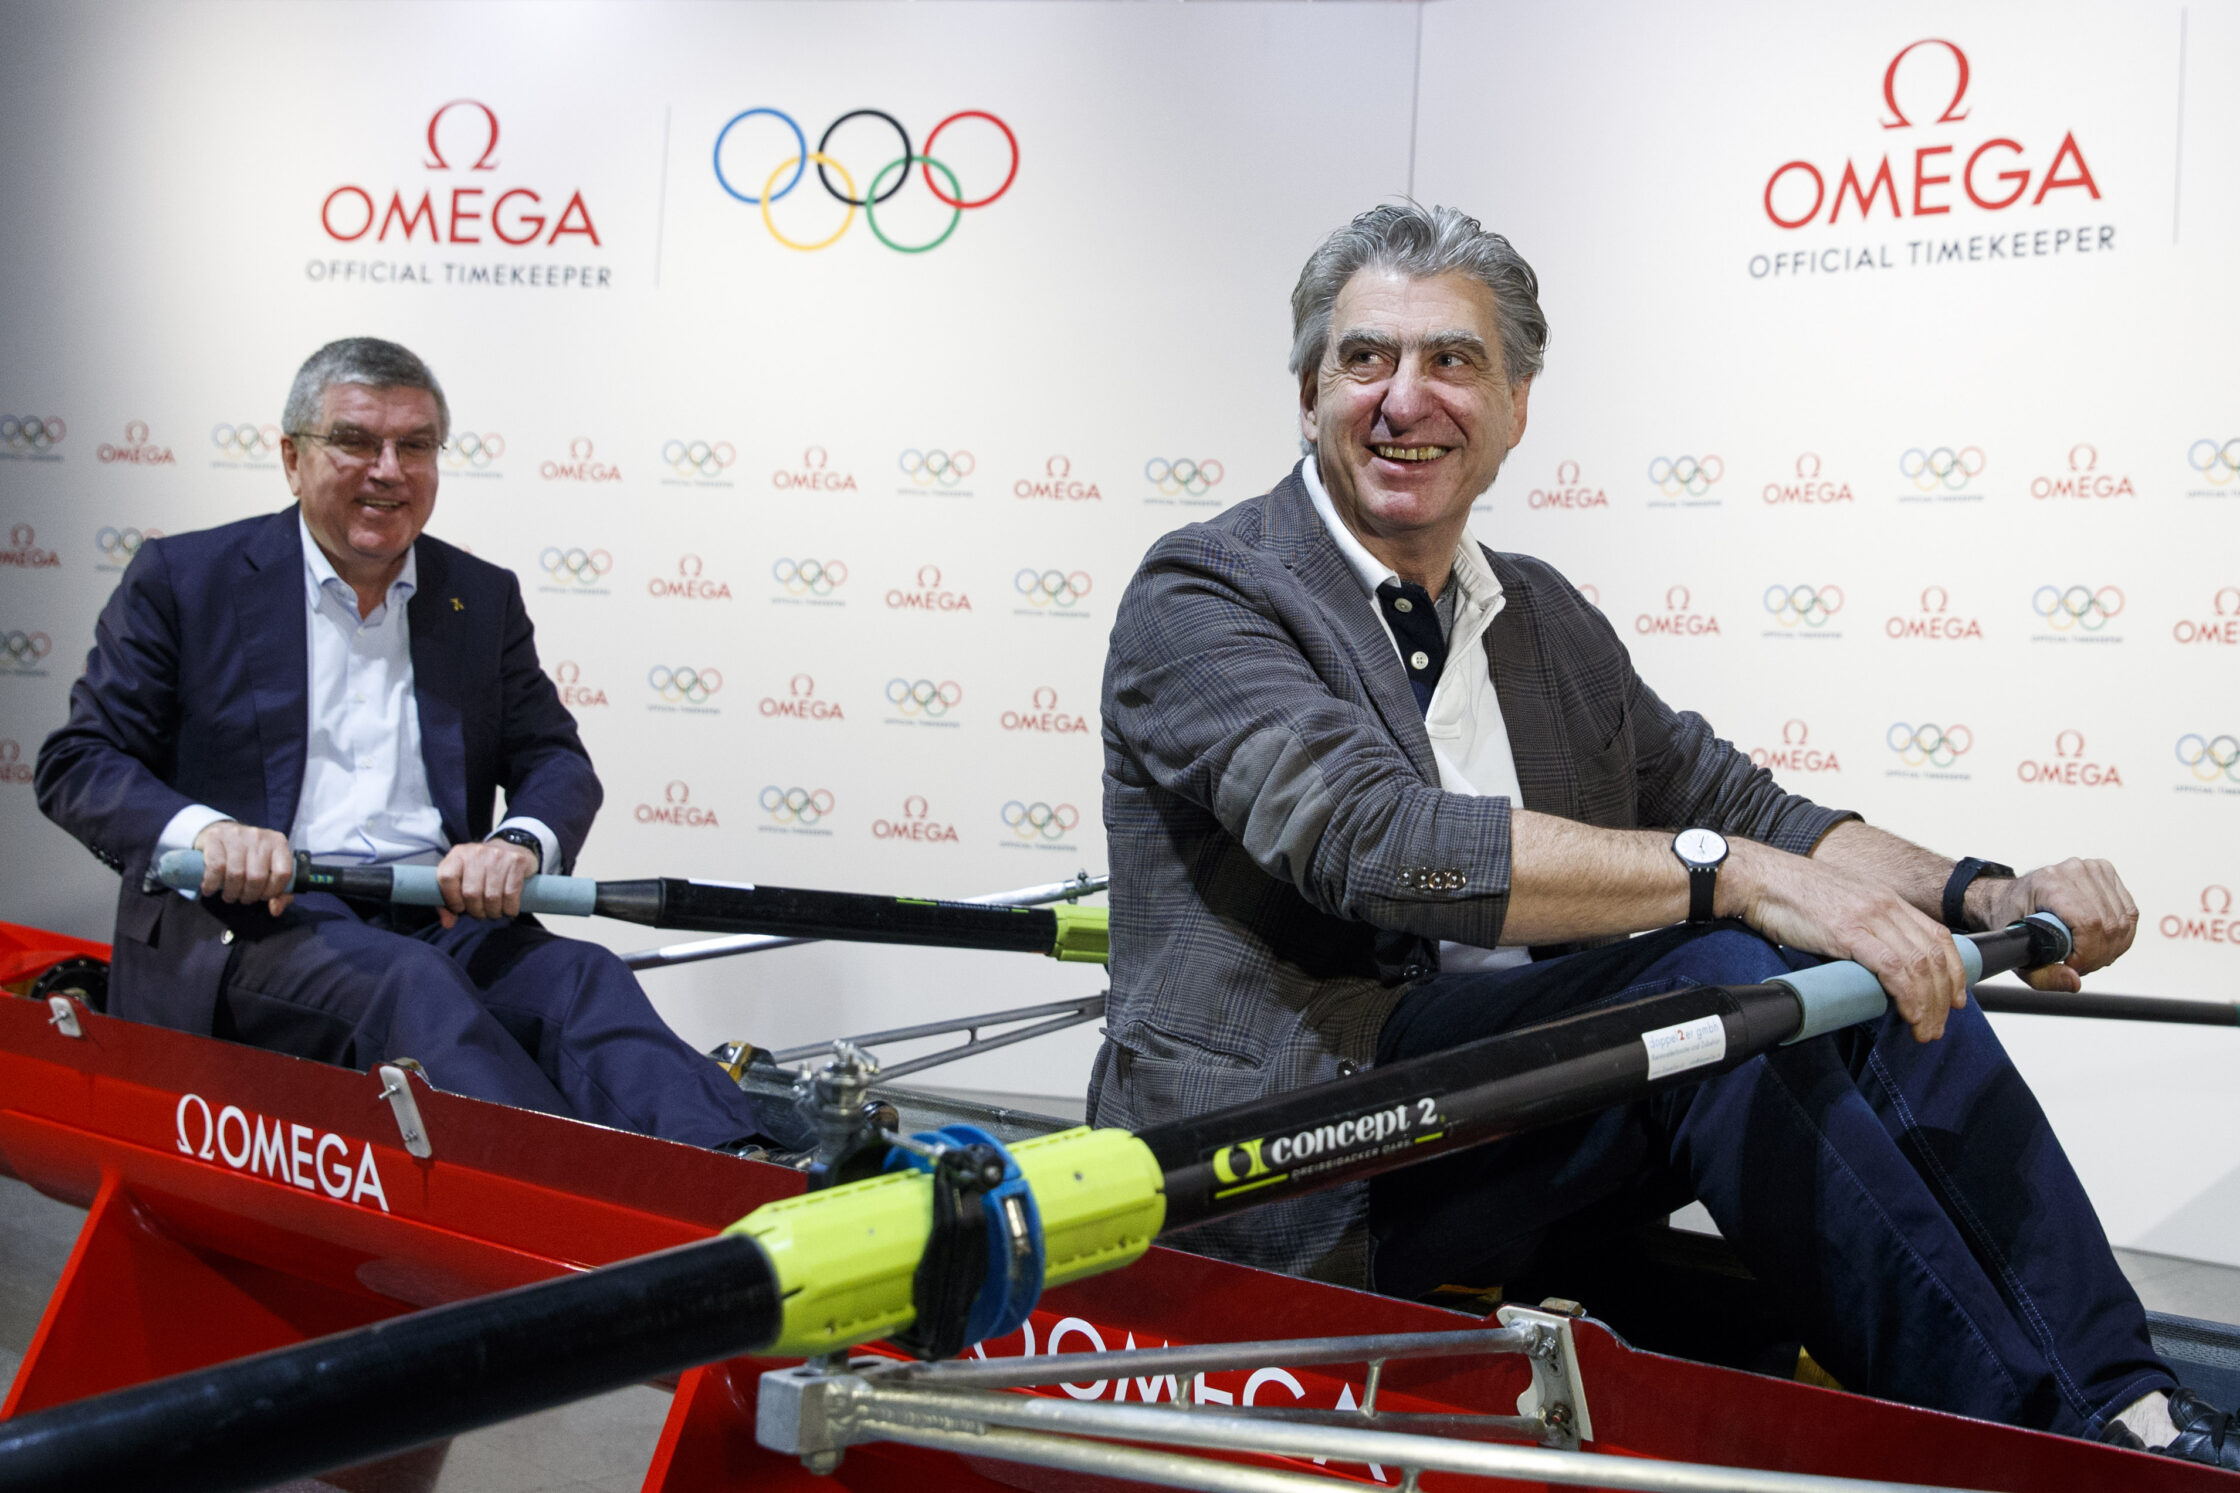 IOC President Thomas Bach and Nick Hayek, CEO of Swatch Group showing their strength at The Olympic Museum in Lausanne